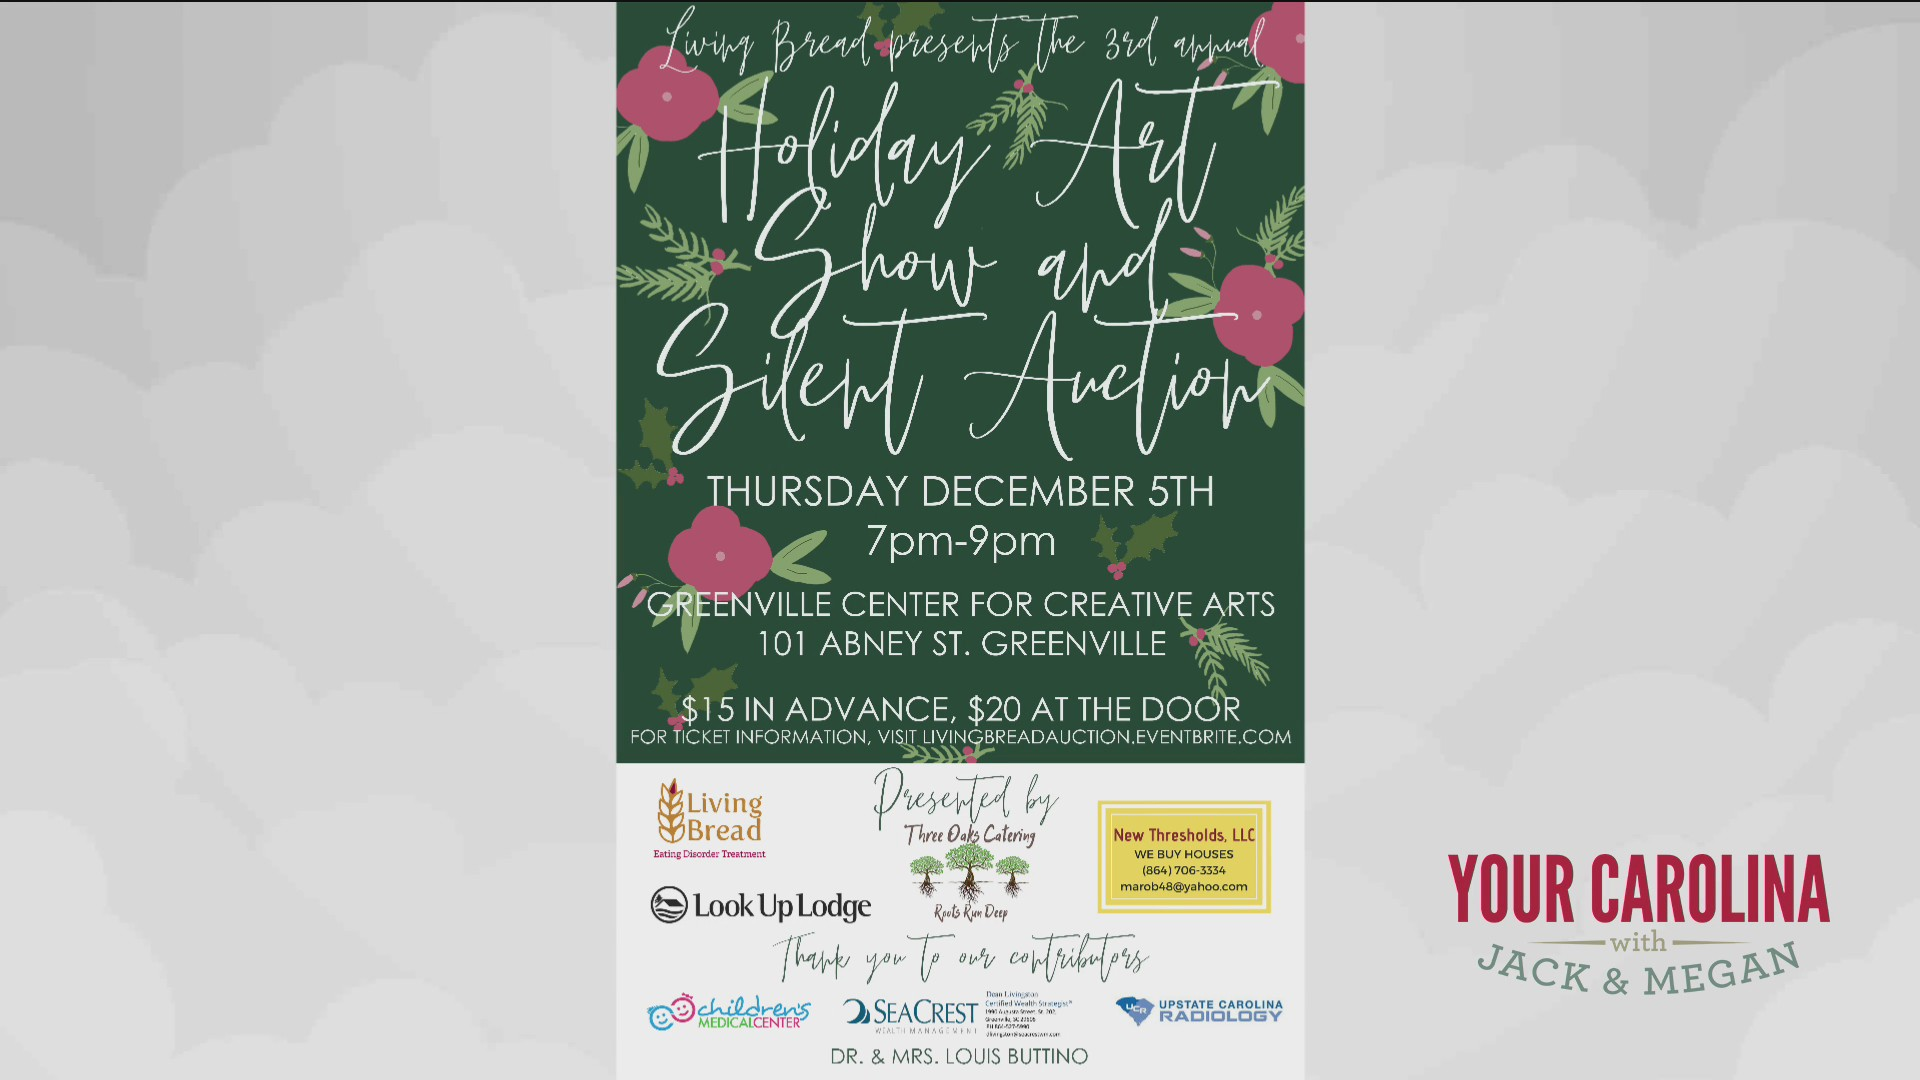 Living Bread - Art Show And Silent Auction